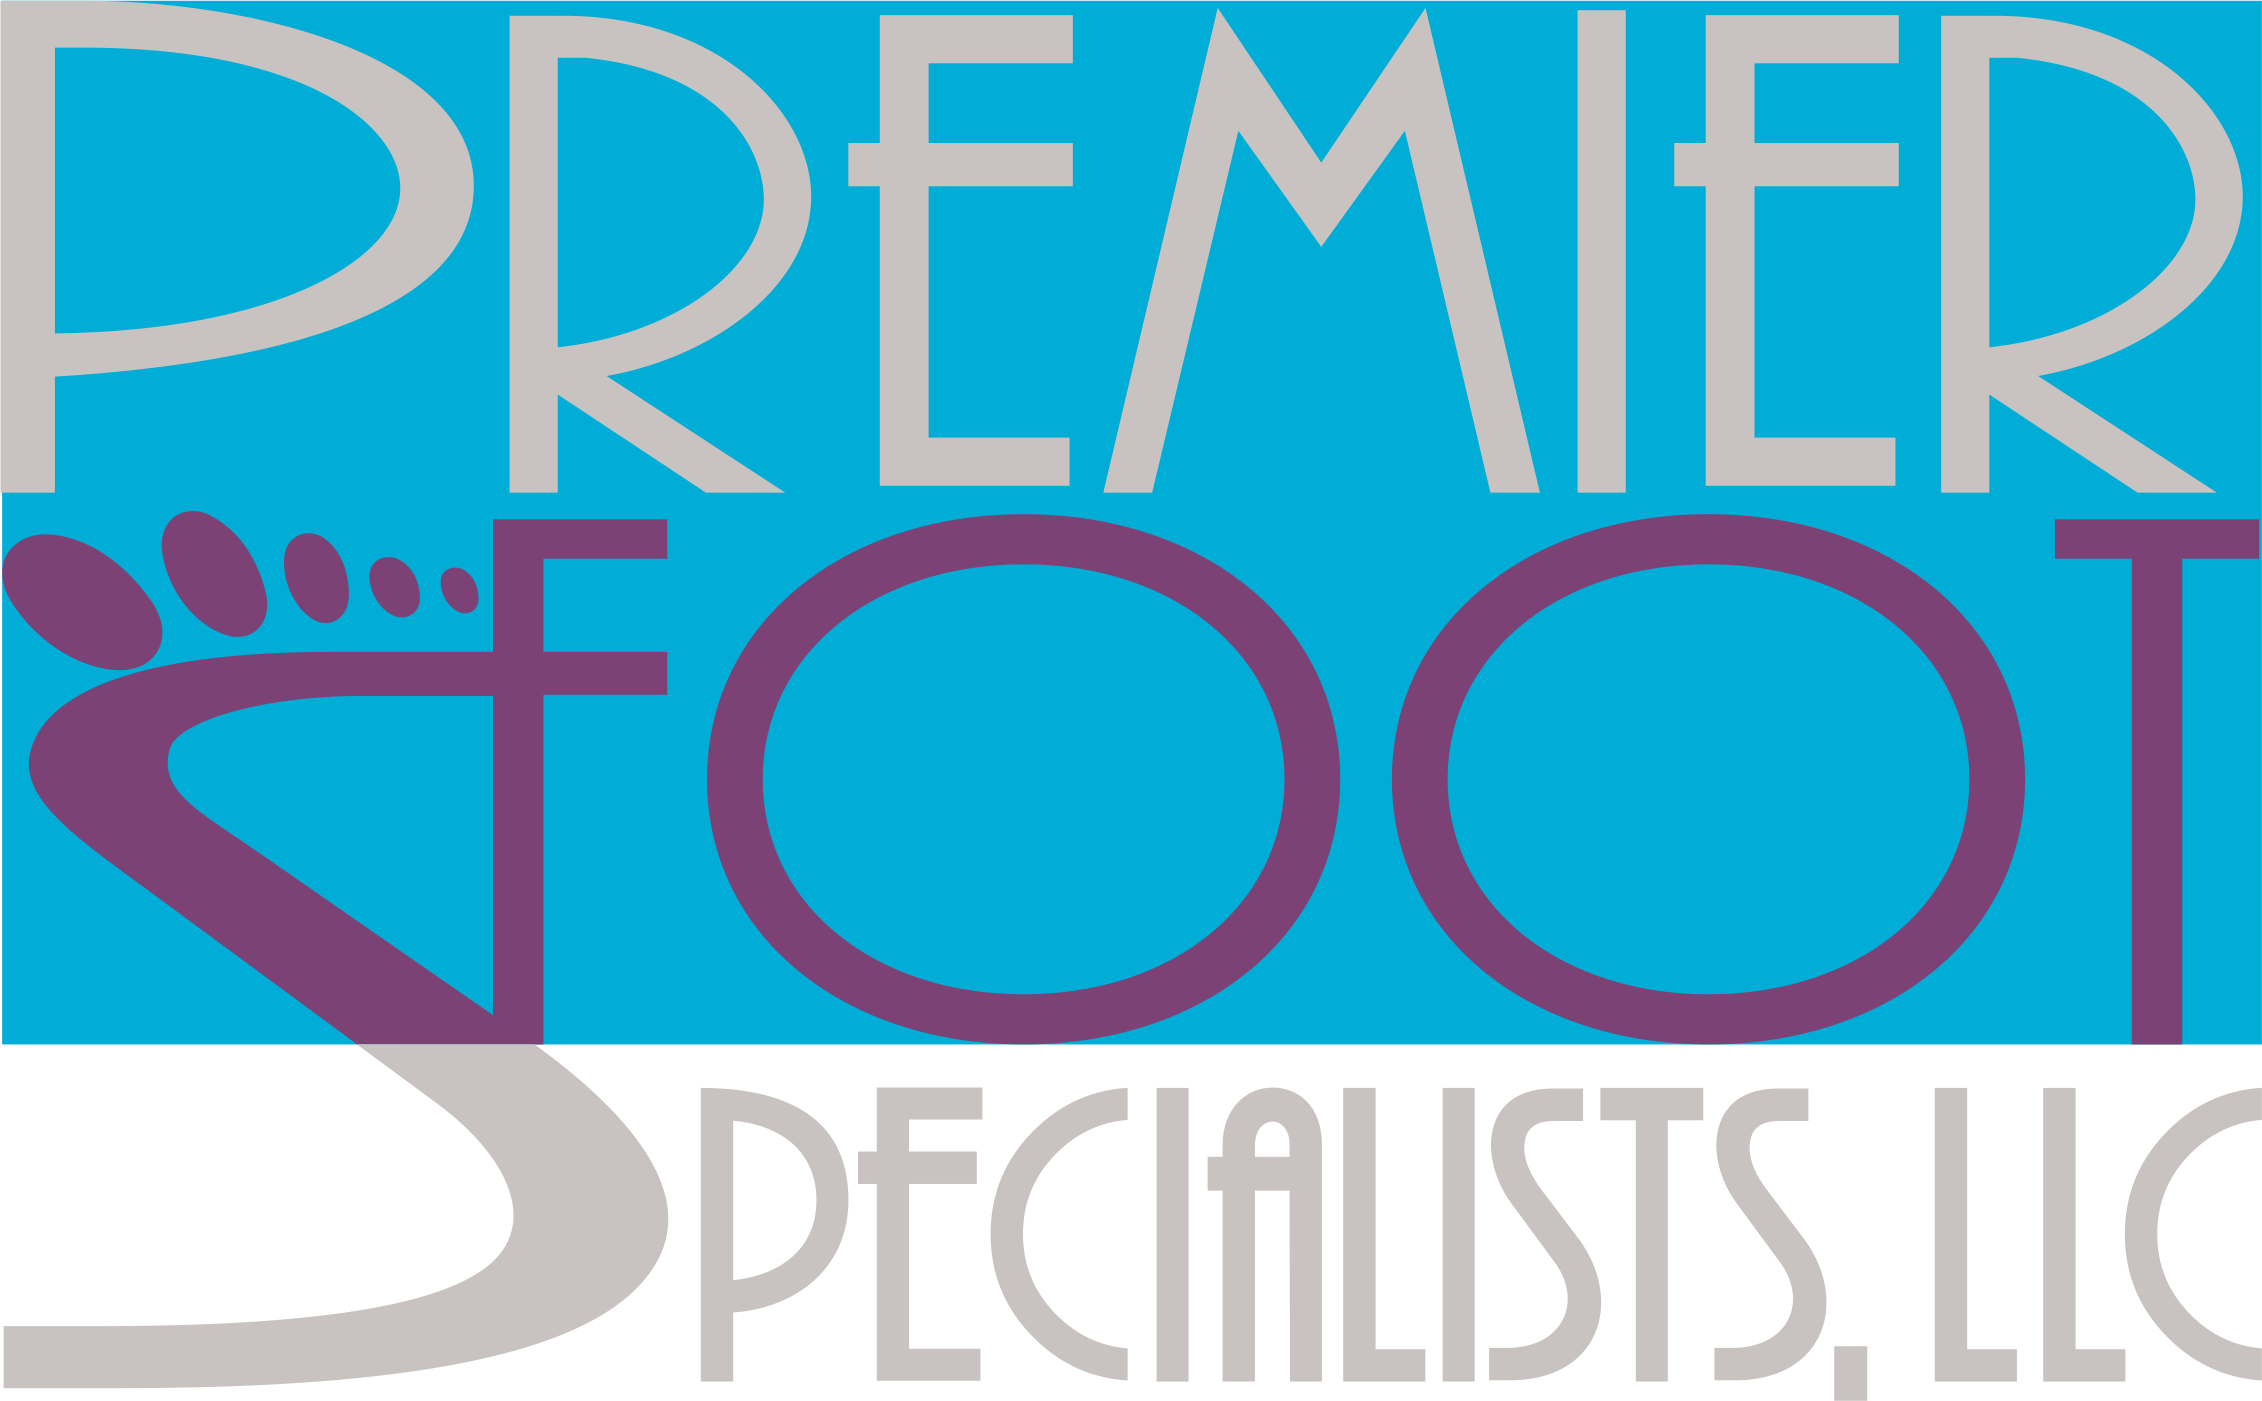 Premier Foot Specialists, LLC